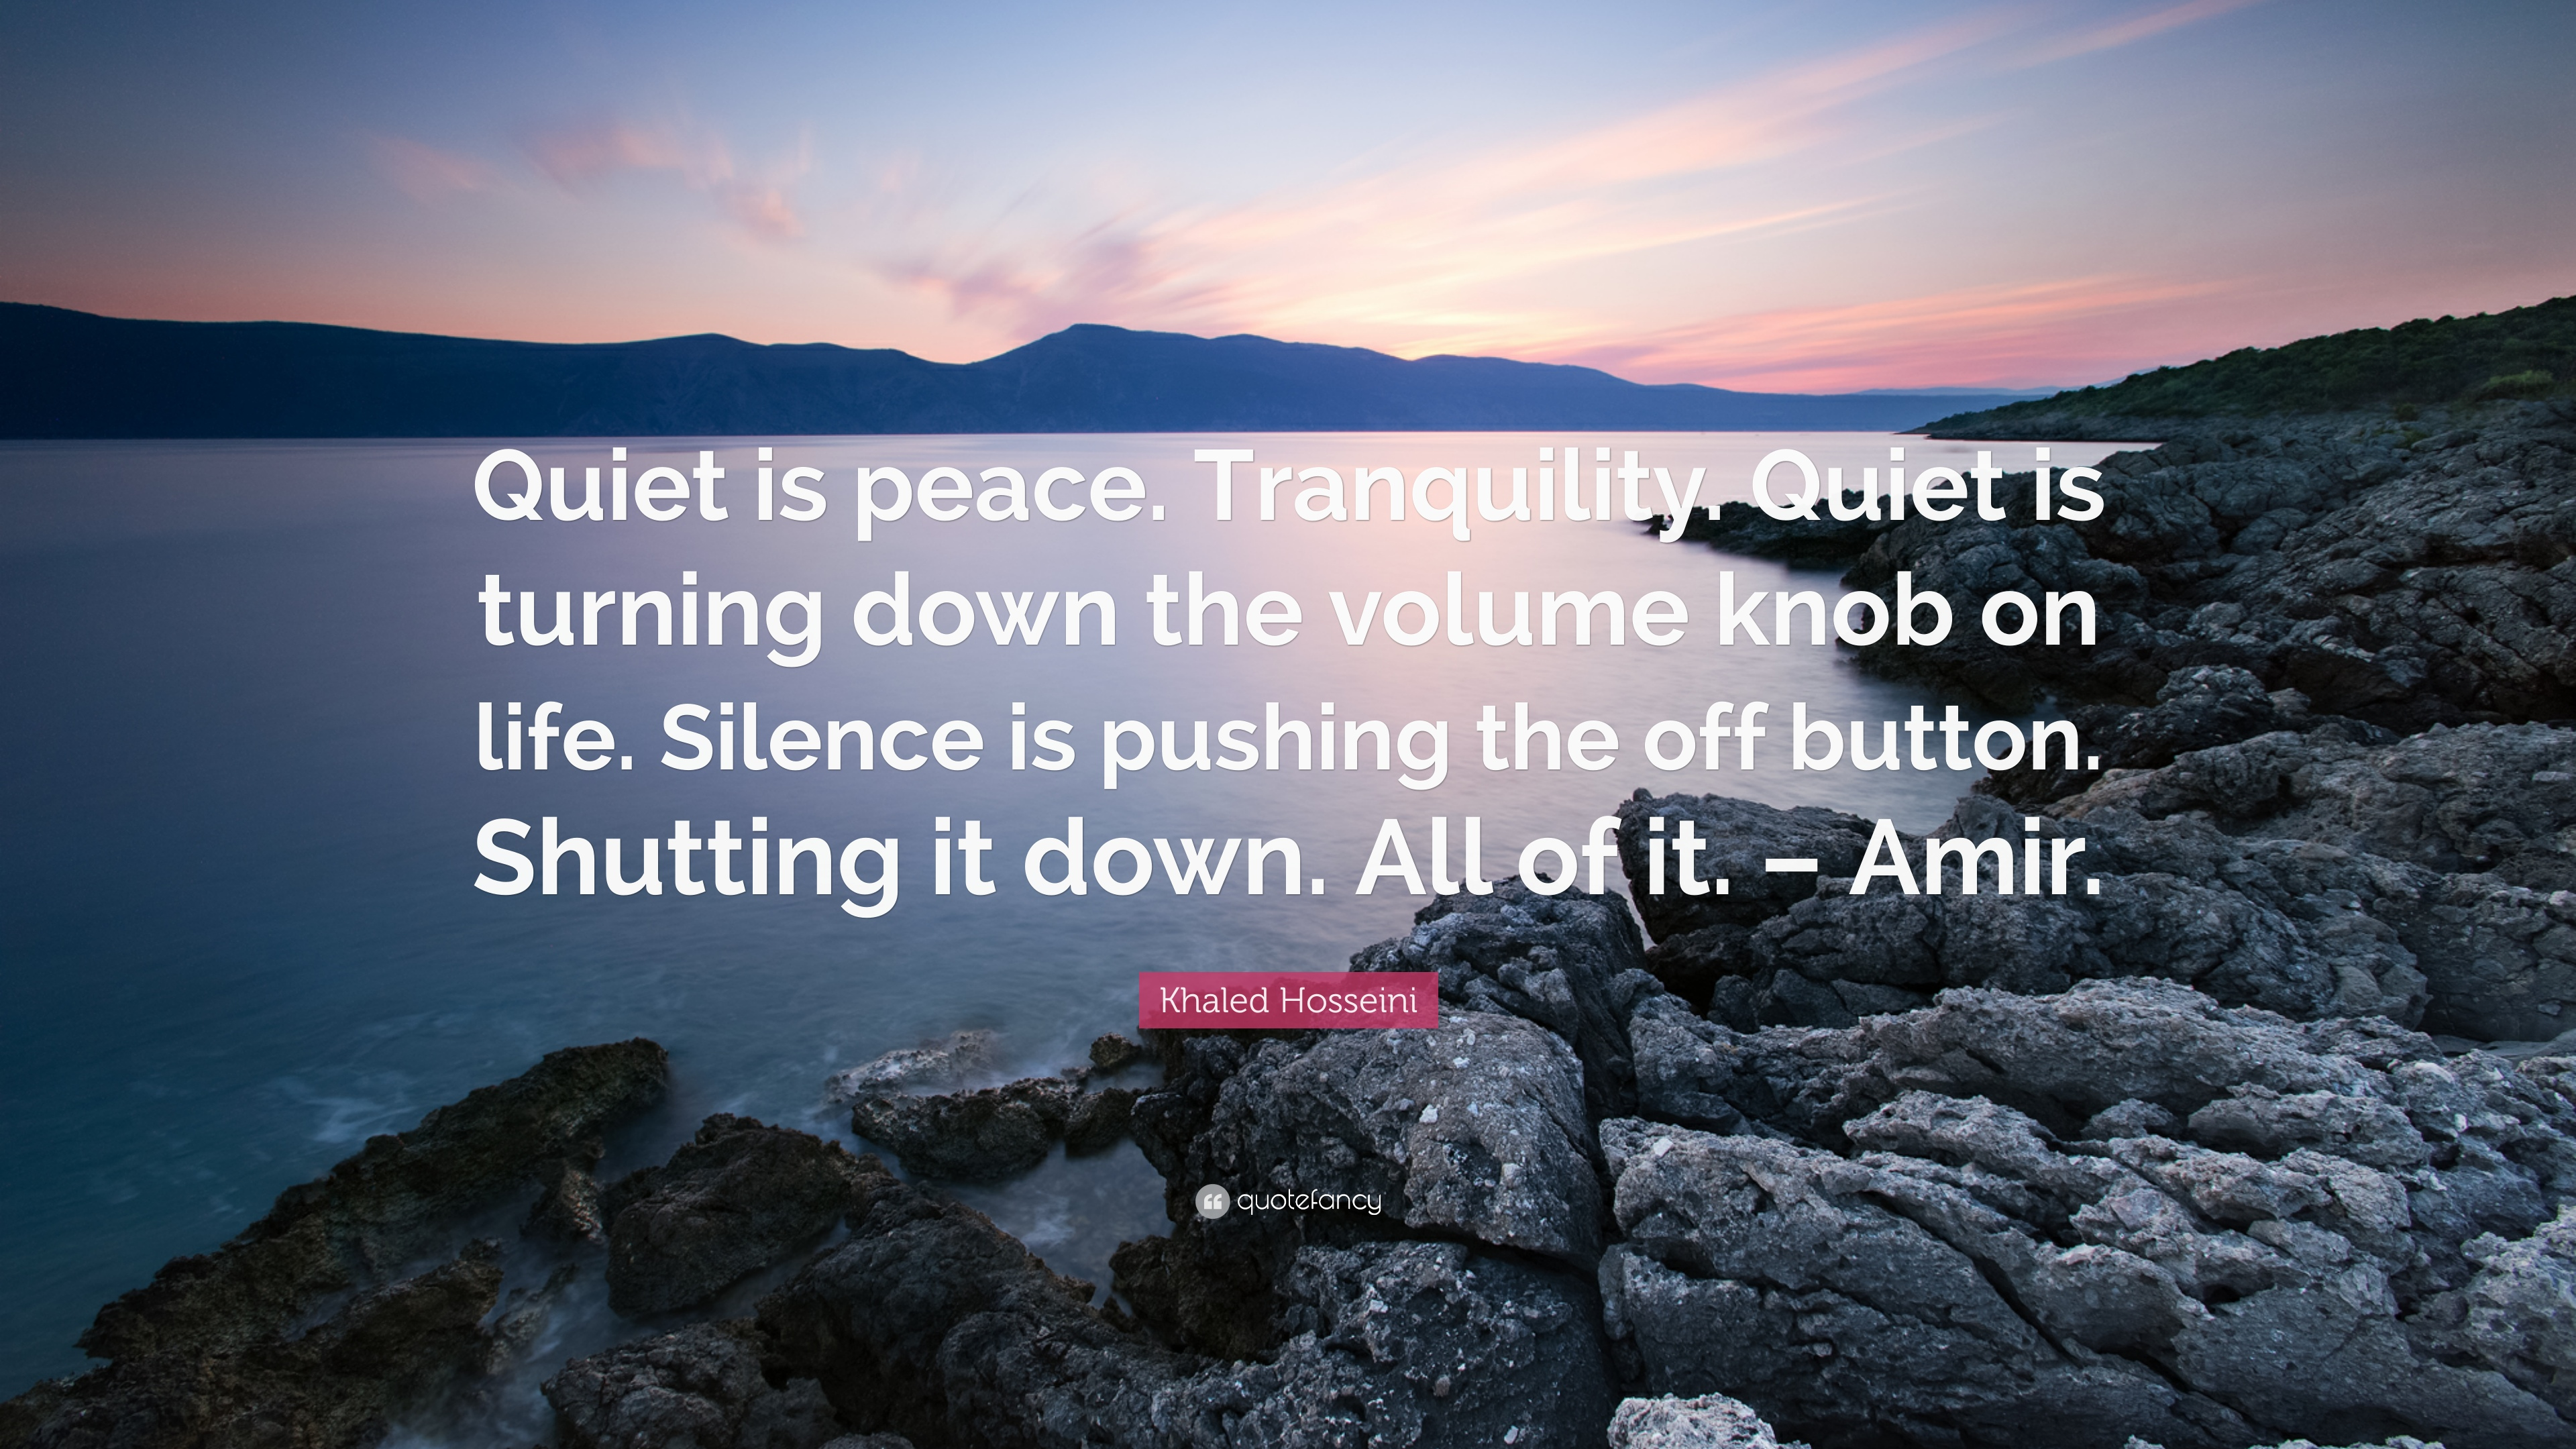 Image result for Quiet is peace.Tranquility. Quiet is turning down the volume knob on life.silence is pushing off the button.shutting it down all of it.